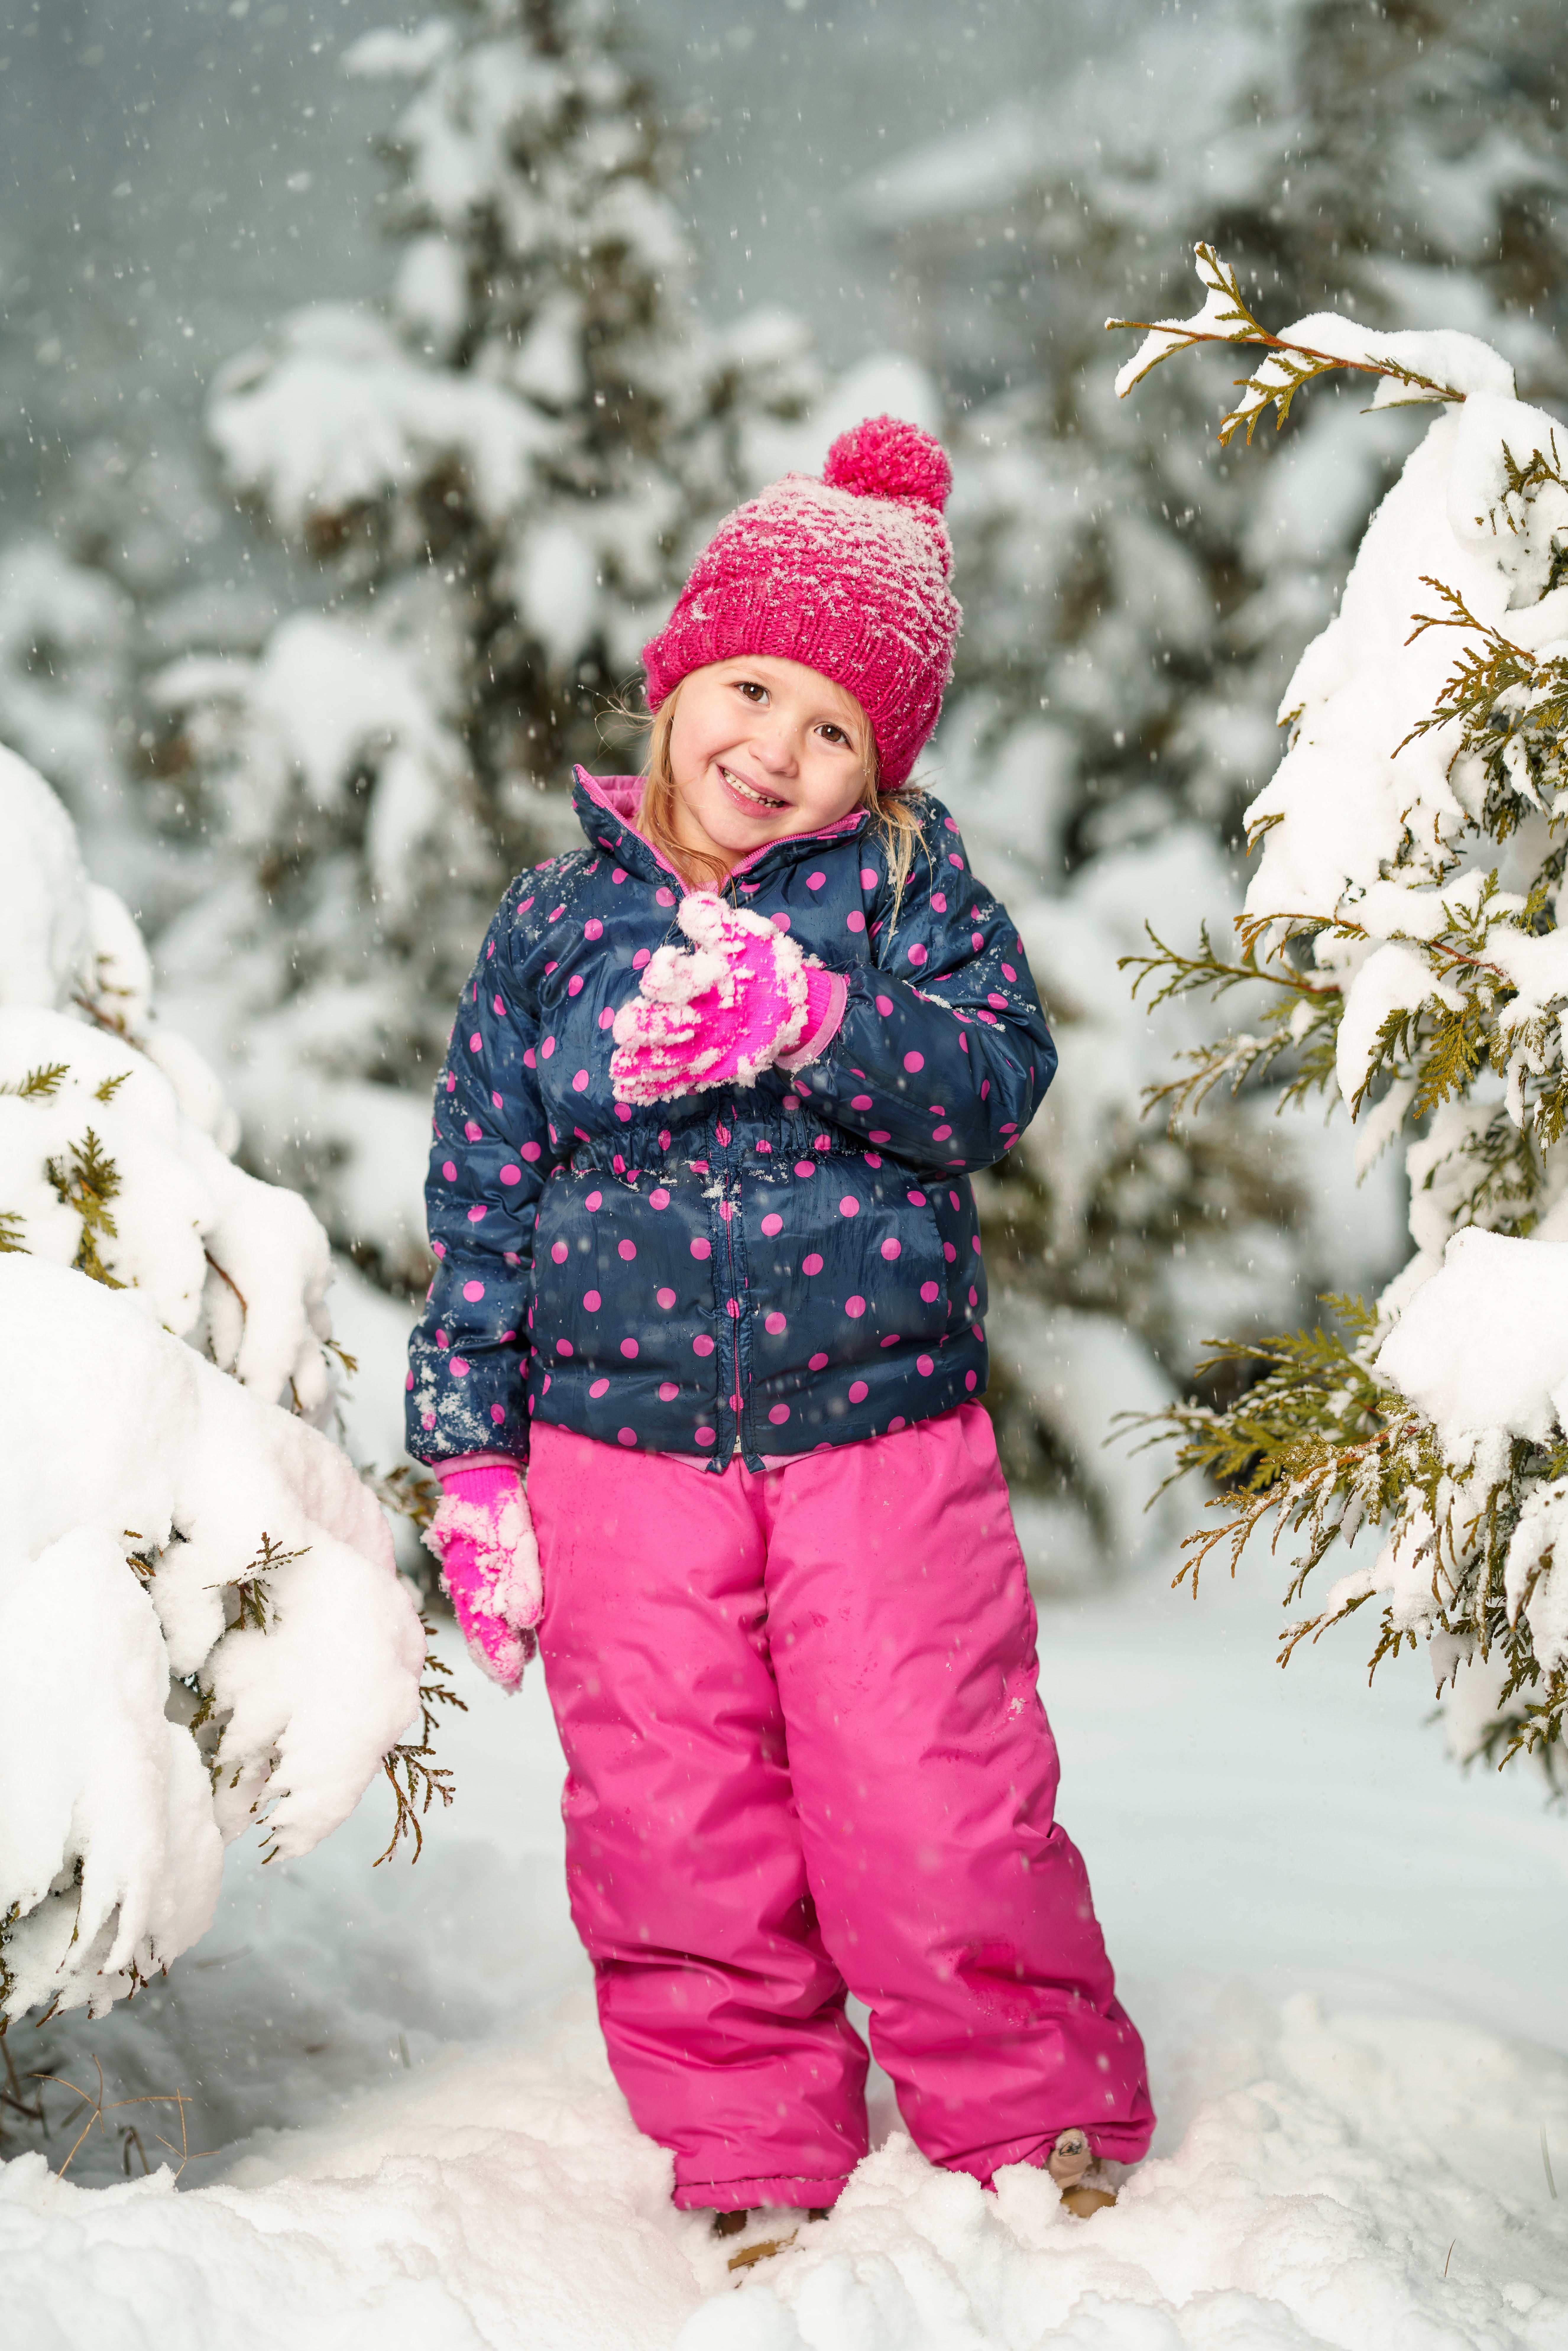 girl standing on white snow while smiling near trees covered with snow